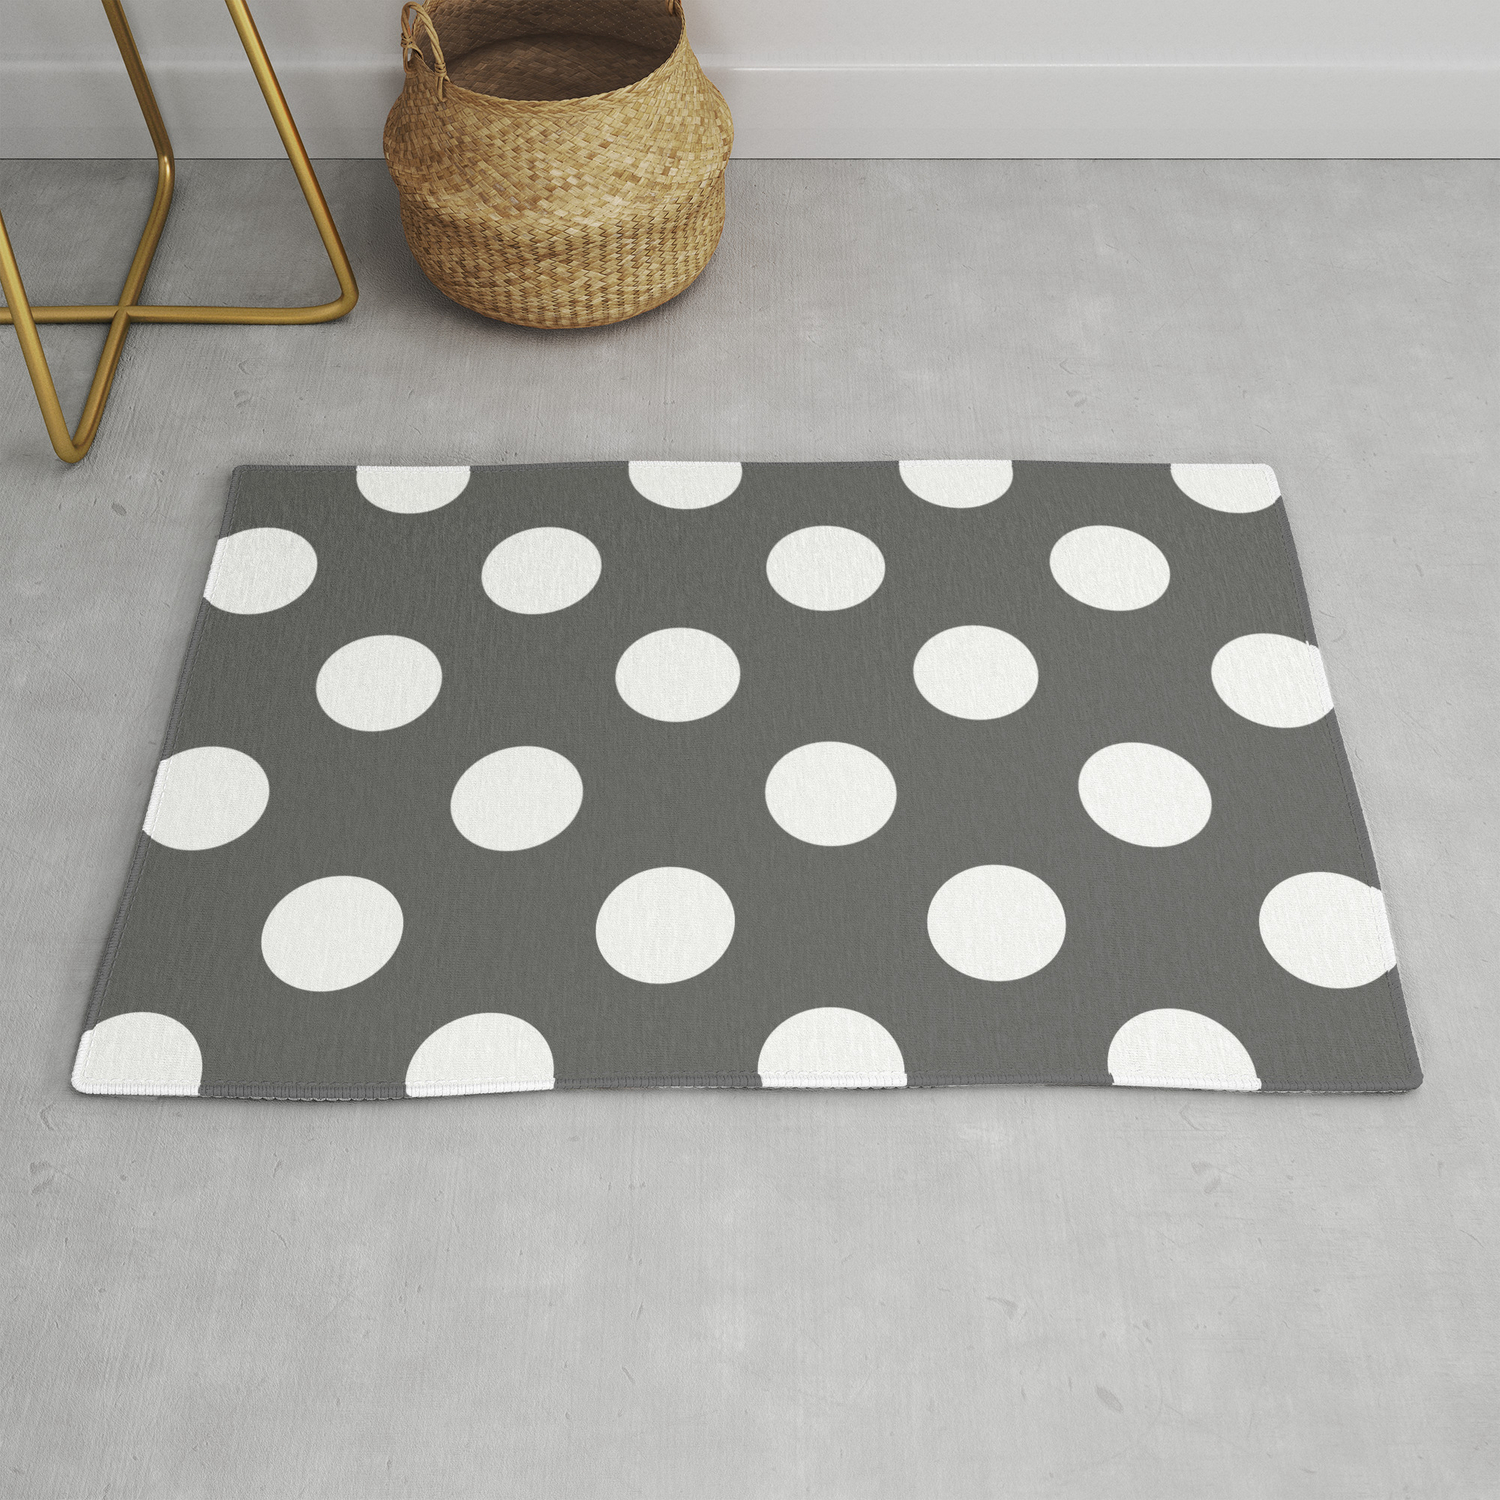 Picture of: Large Polka Dots White On Dark Gray Rug By Polkadotsshop Society6